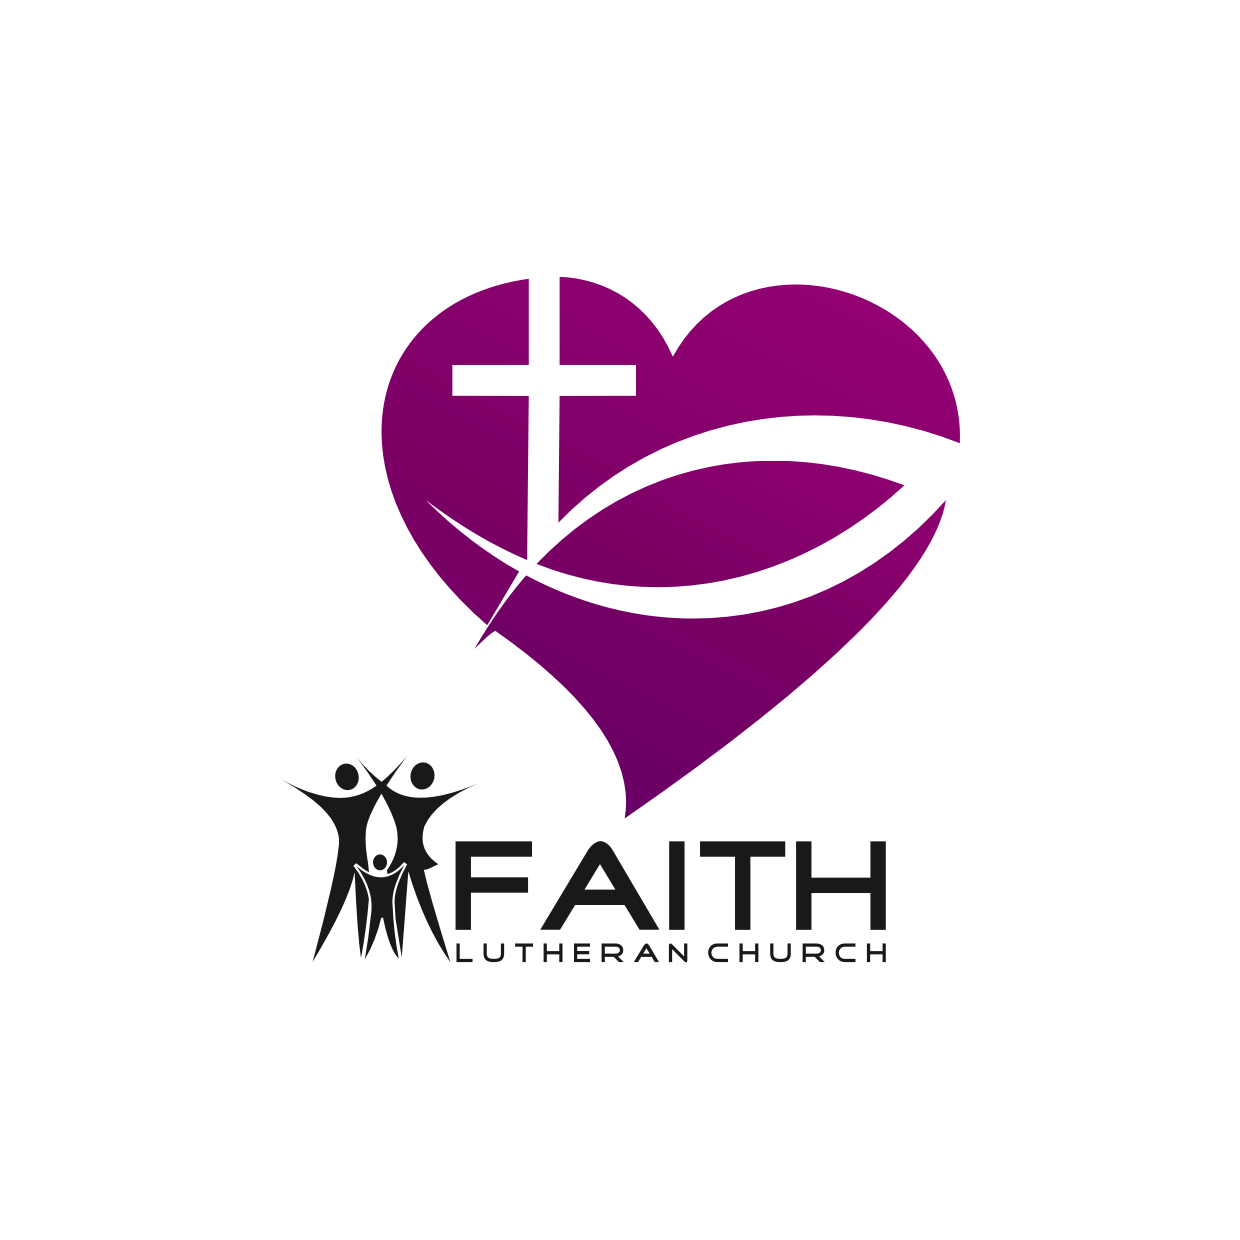 Logo Design by Analla Art - Entry No. 189 in the Logo Design Contest Logo Design for Faith Lutheran Church.